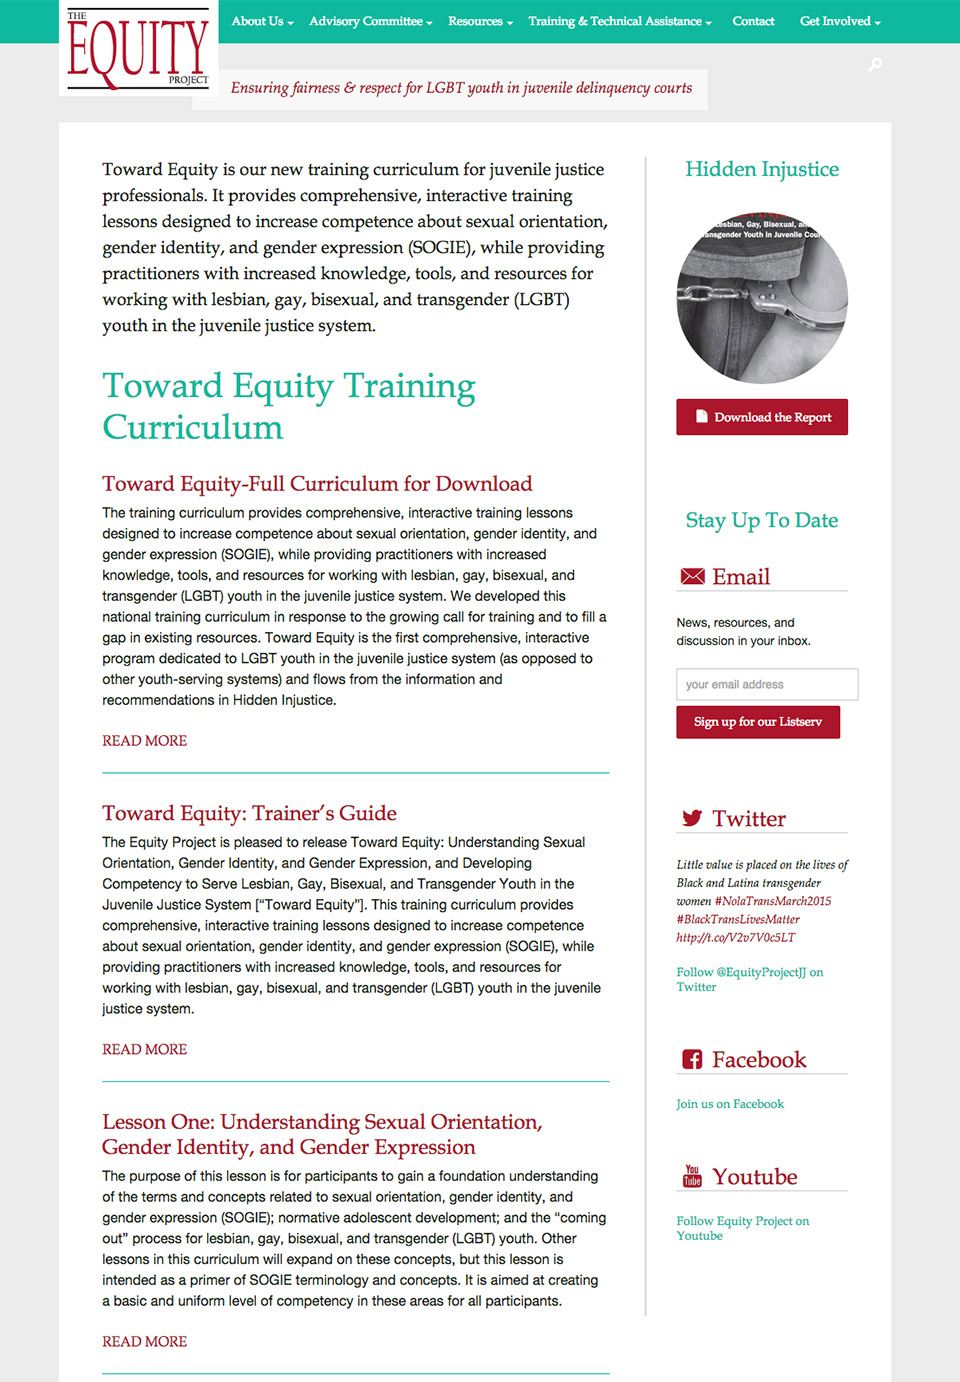 The Equity Project: Training Materials